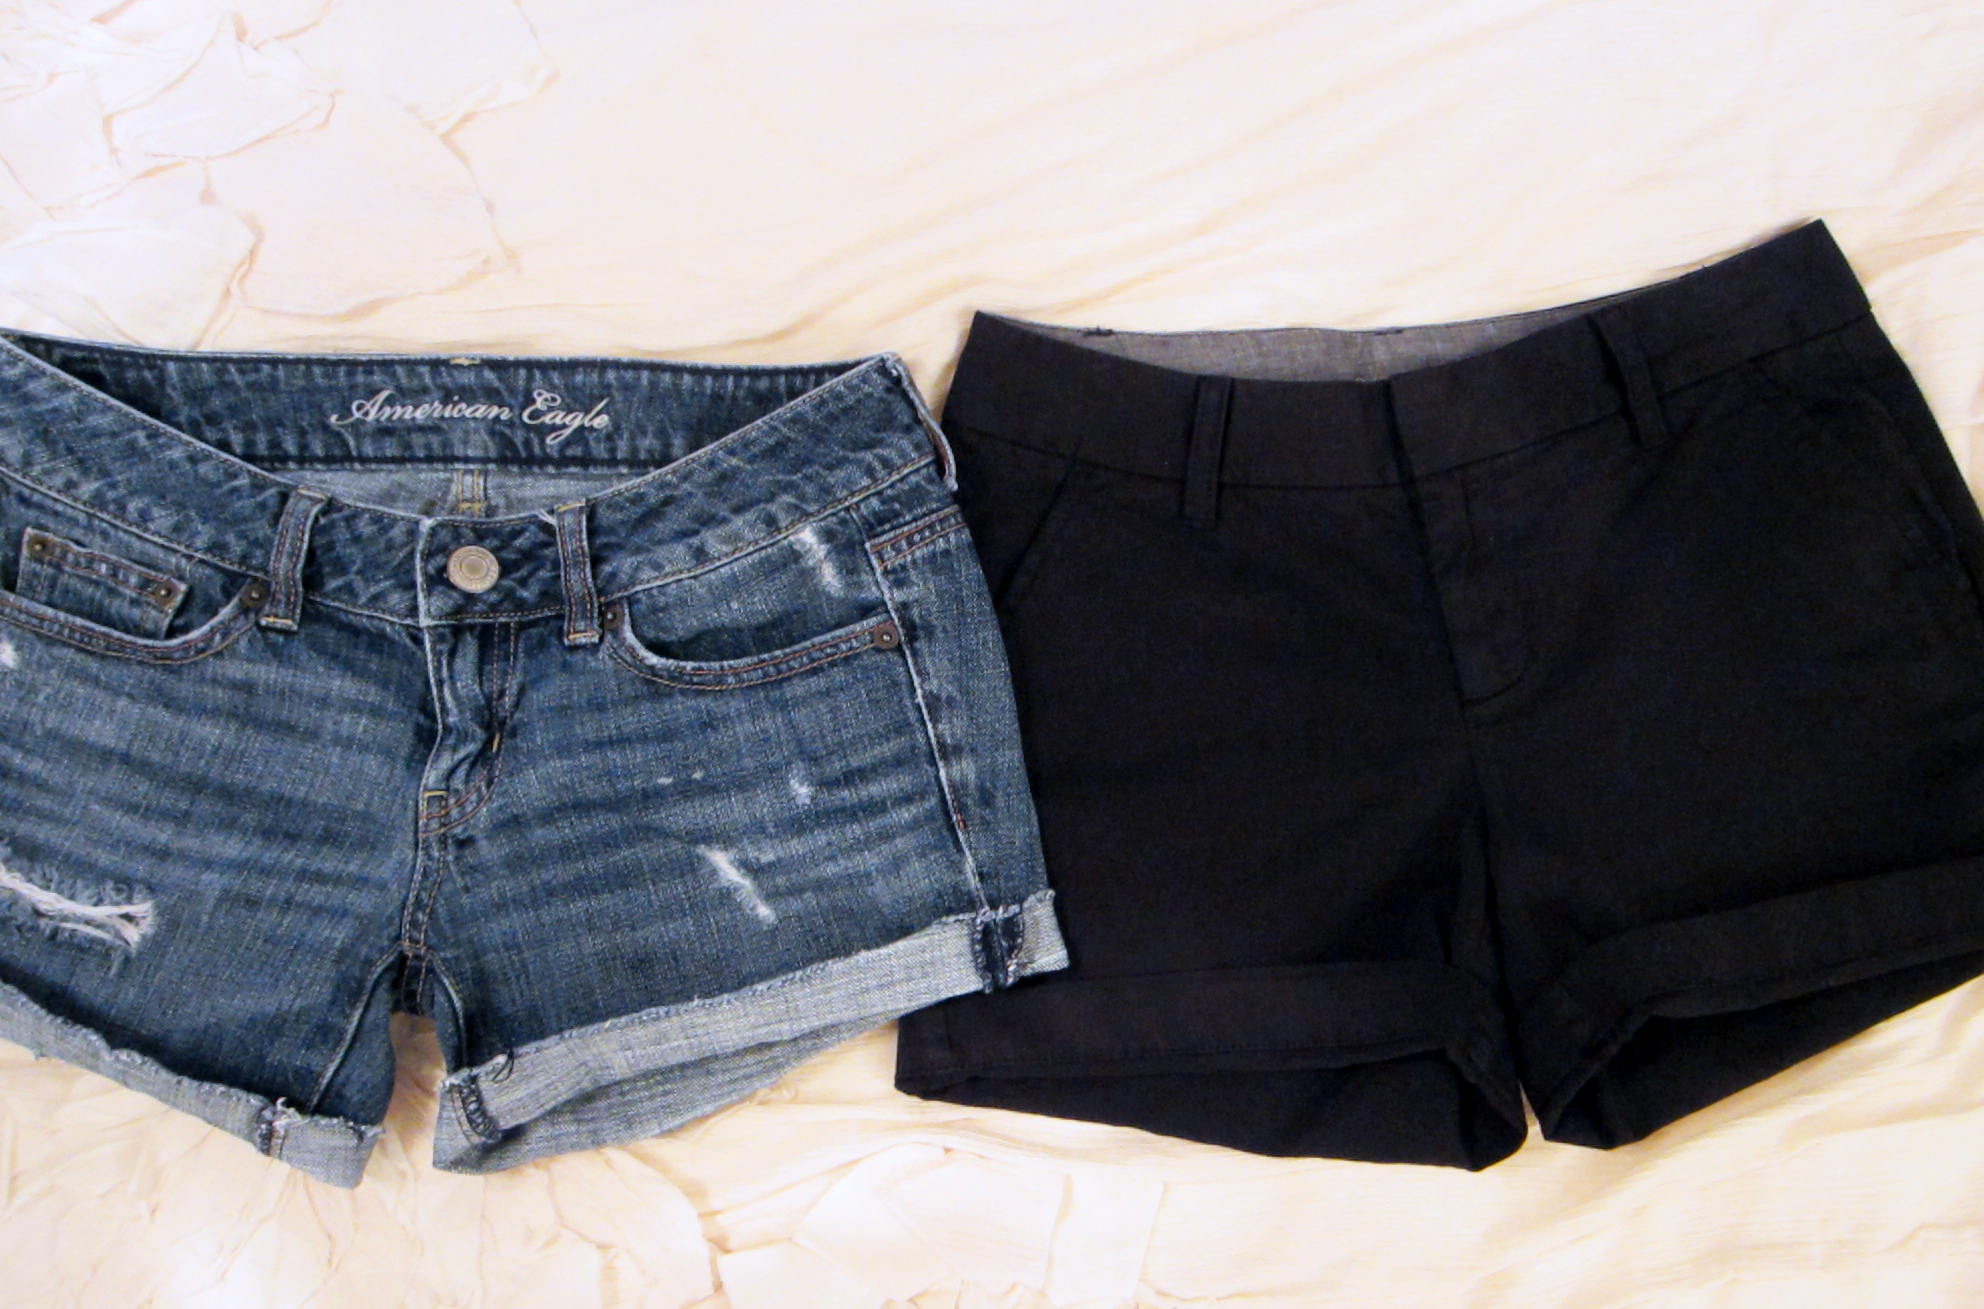 denim shorts: American Eagle (old style)  |  black shorts:  Caslon  (on sale!)